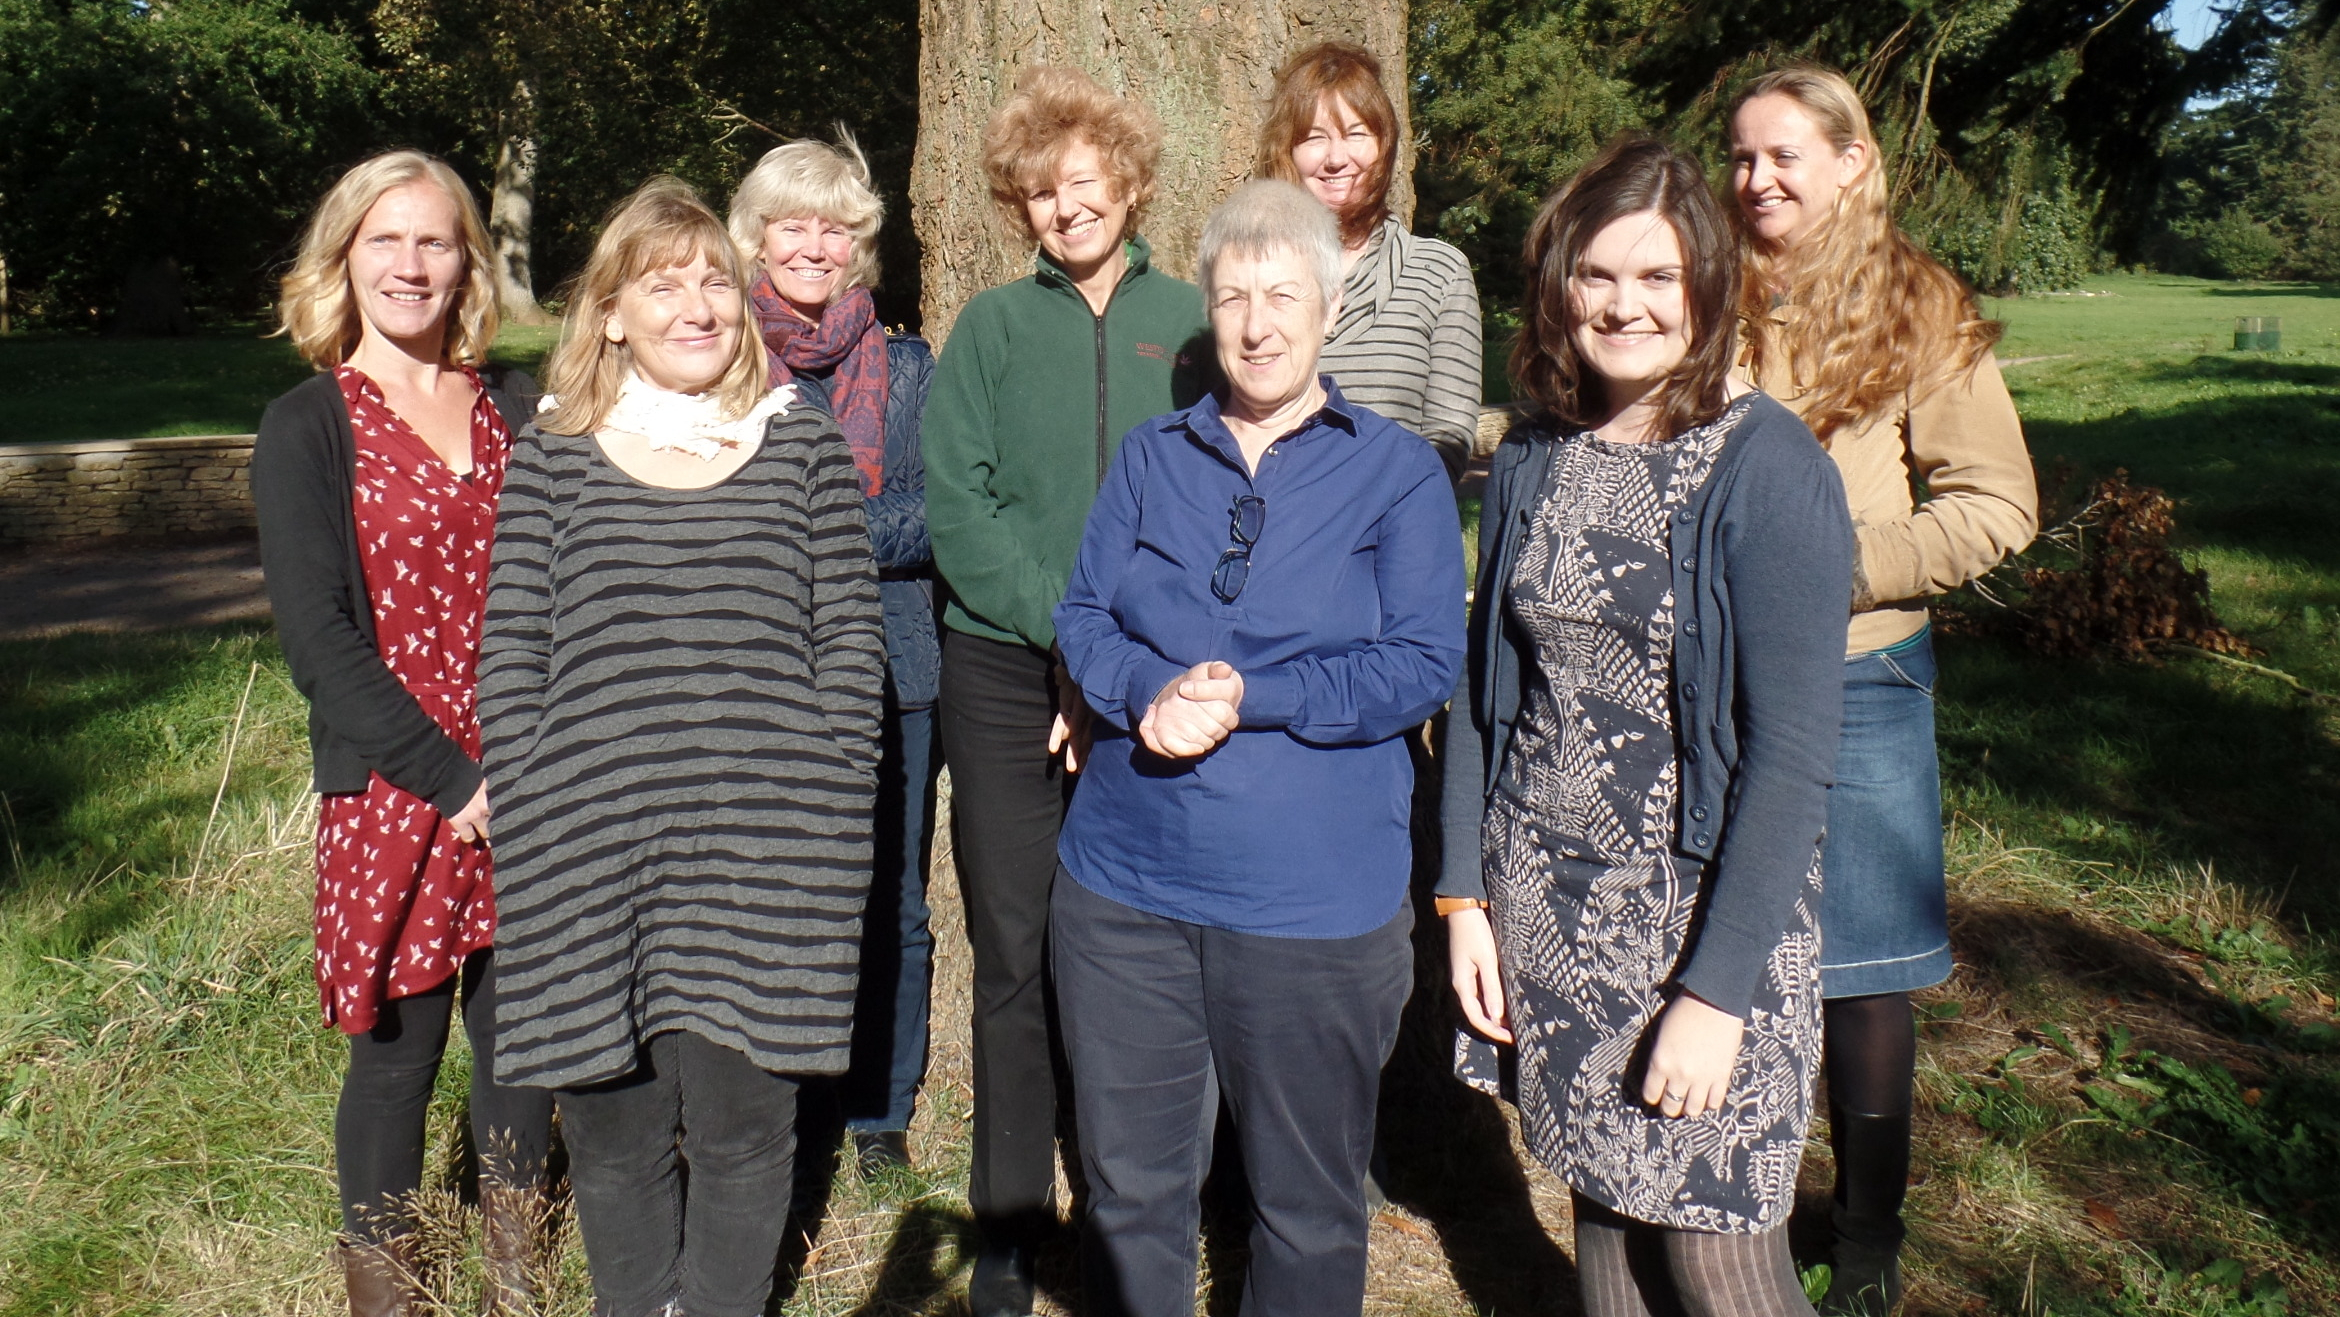 The Friends of Westonbirt Arboretum team